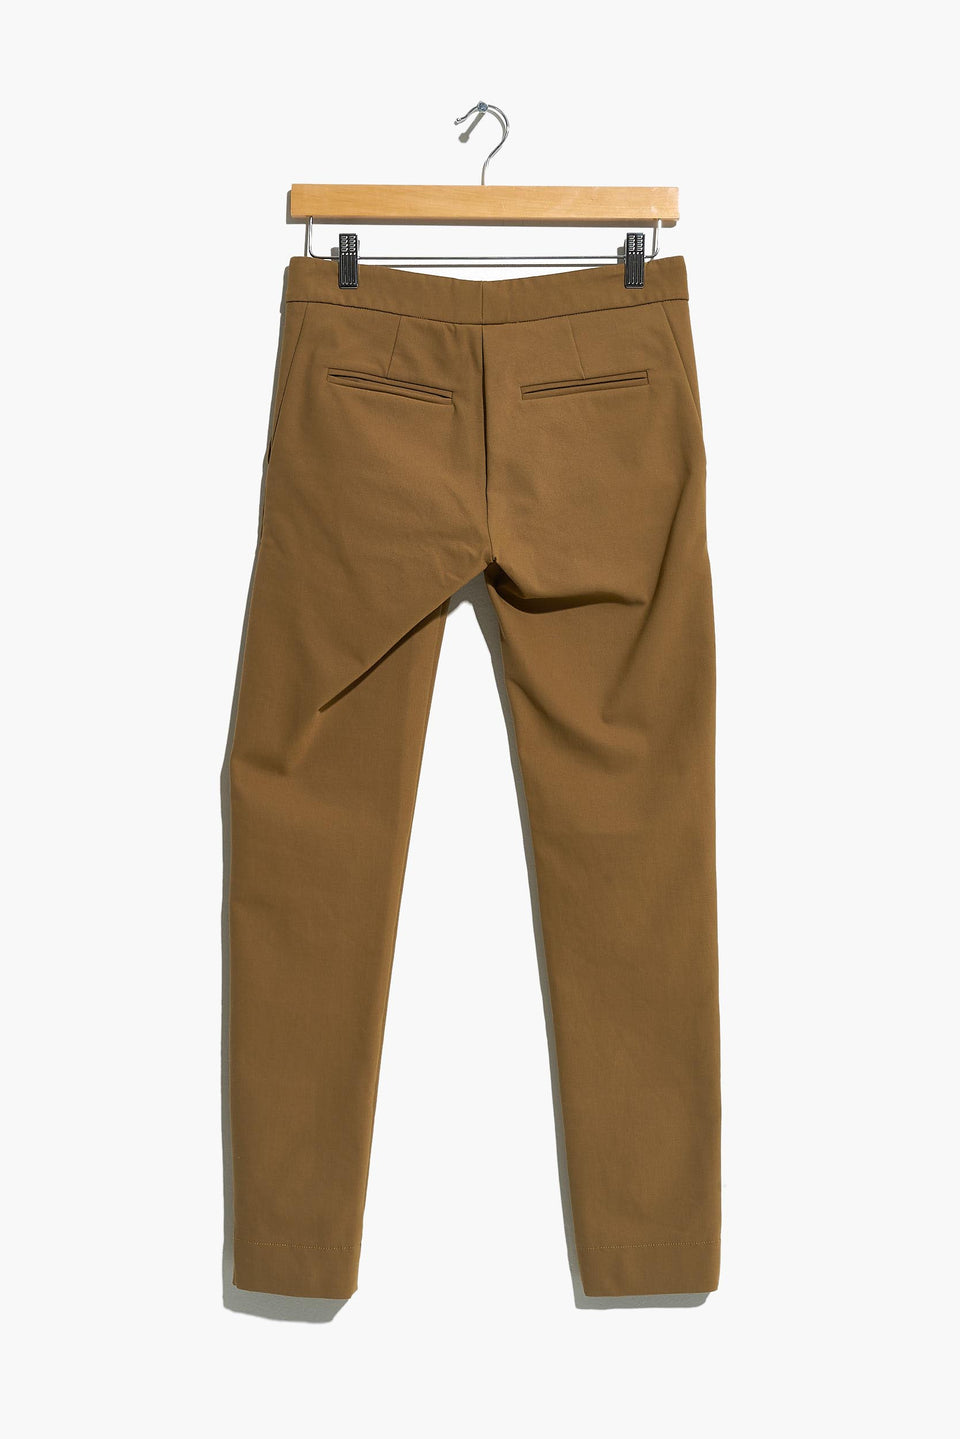 Stella McCartney beige pants